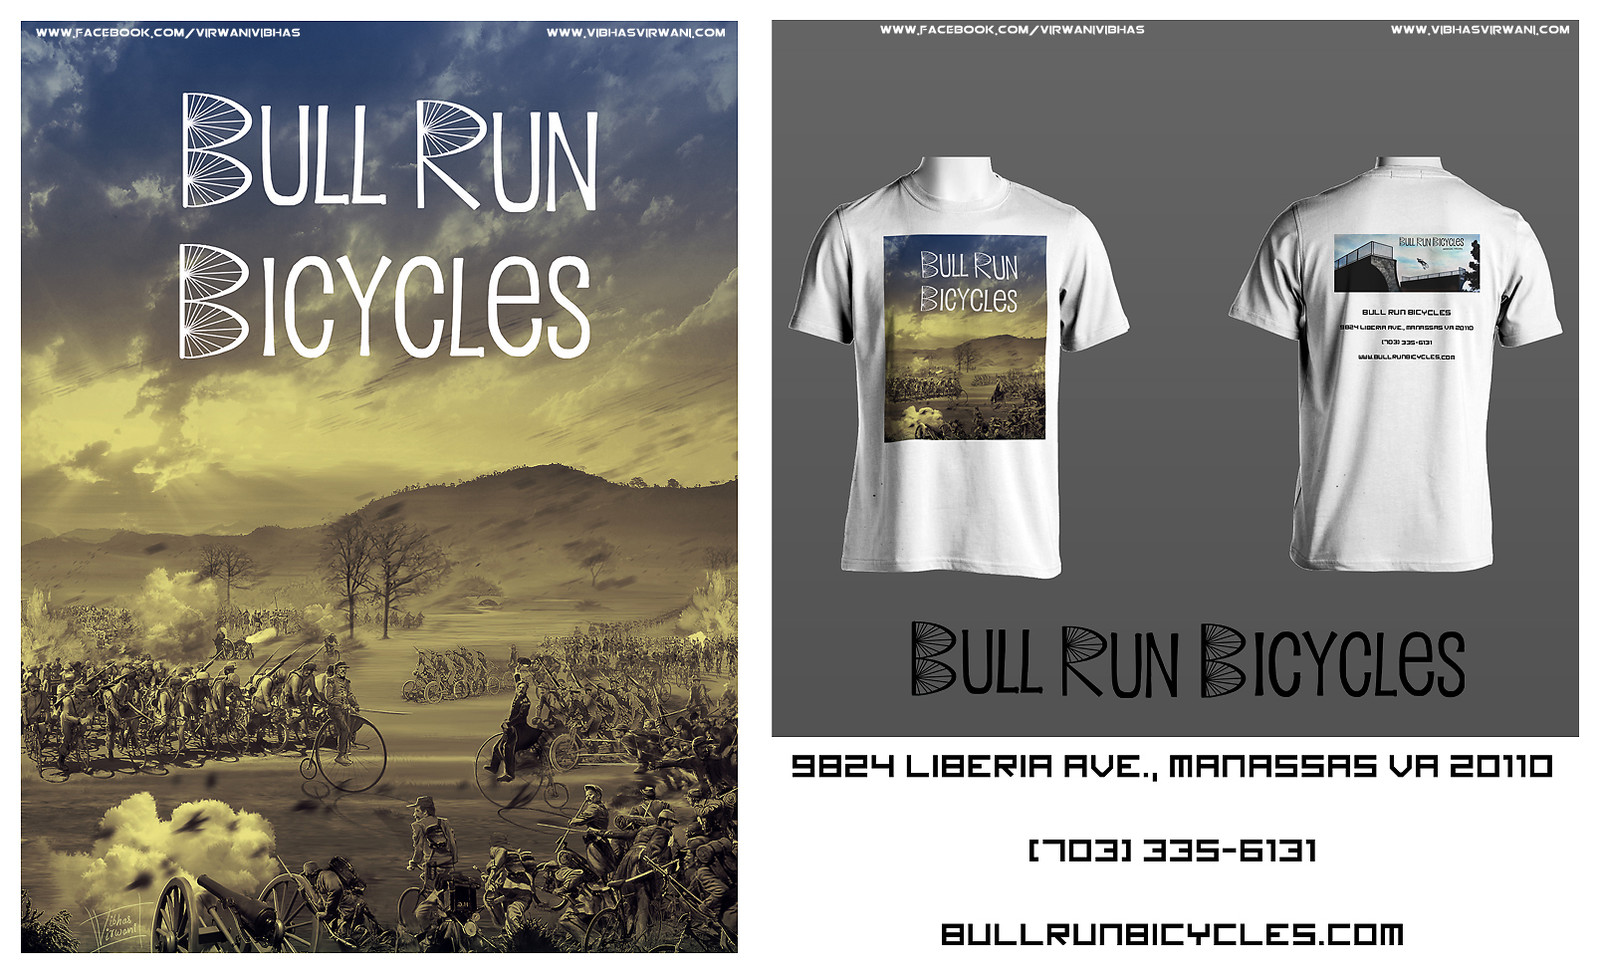 Bull Run Bicycles promotional illustration